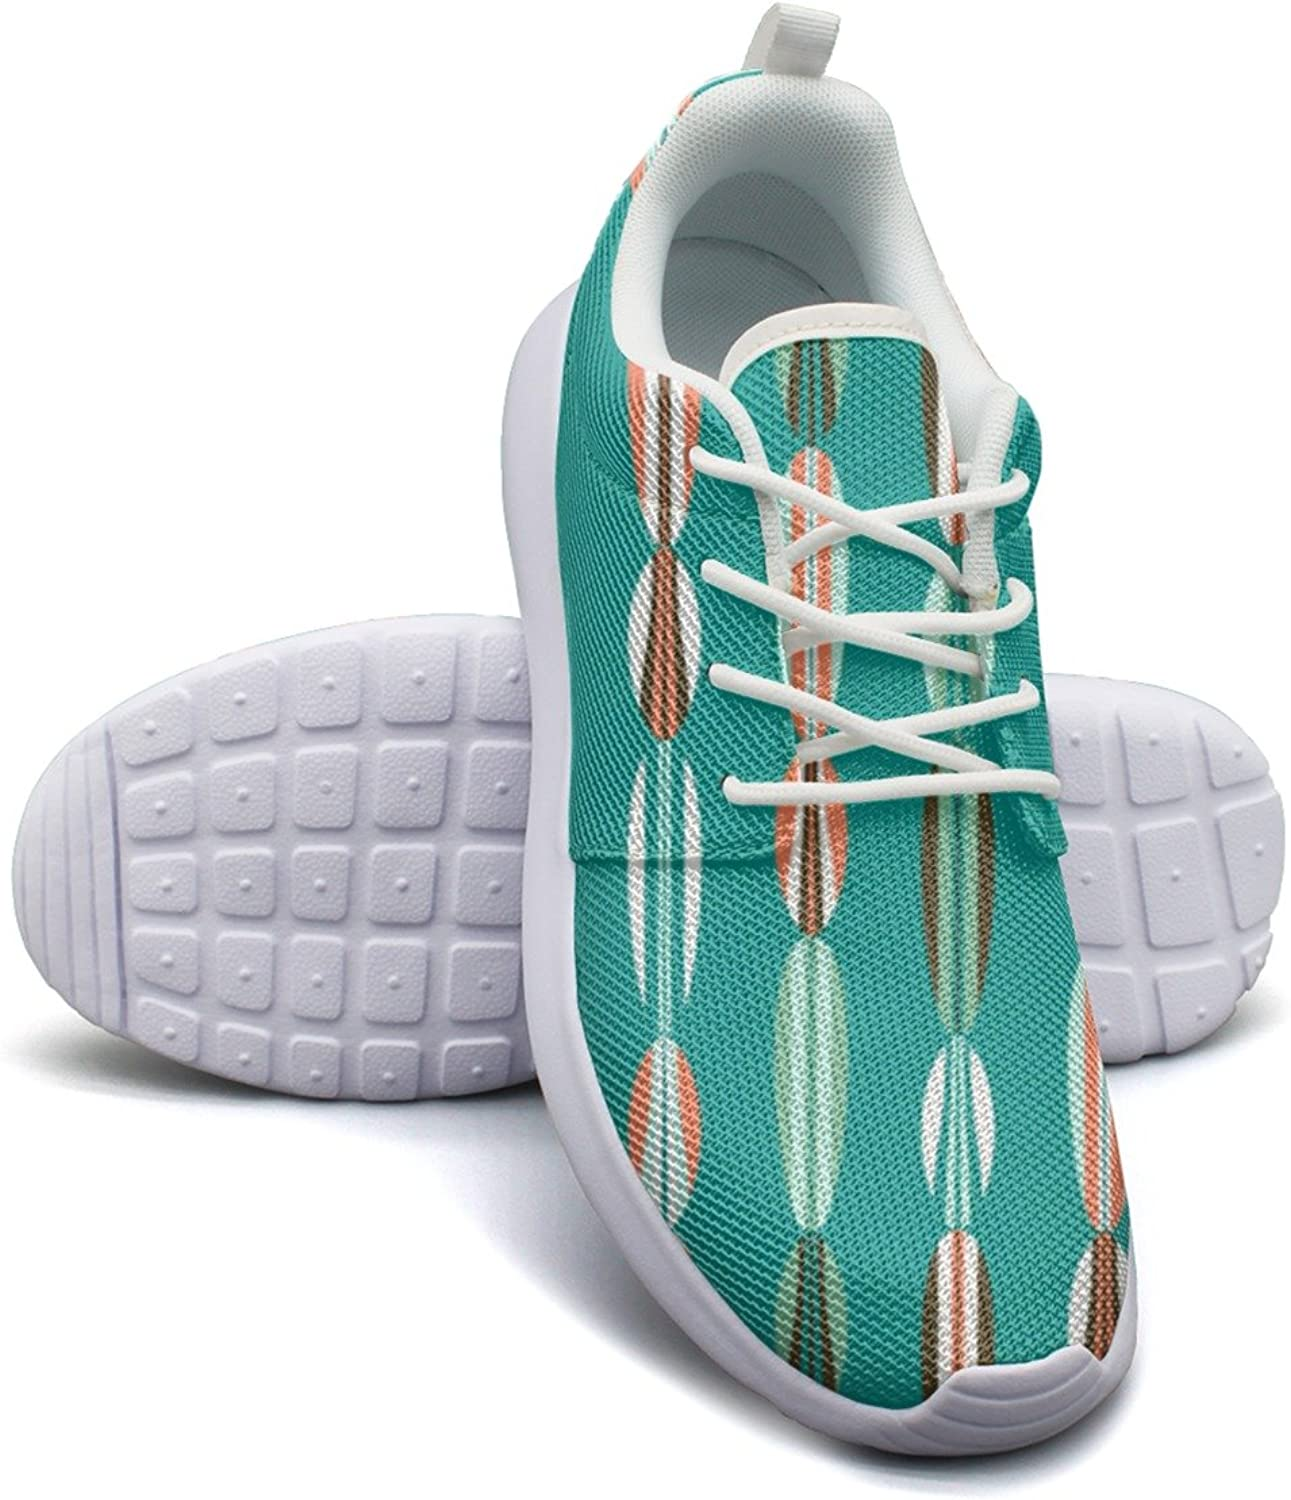 Surf Board Stripes Beach Pattern Women's Lightweight Mesh Tennis Sneakers Exclusive Athletic shoes